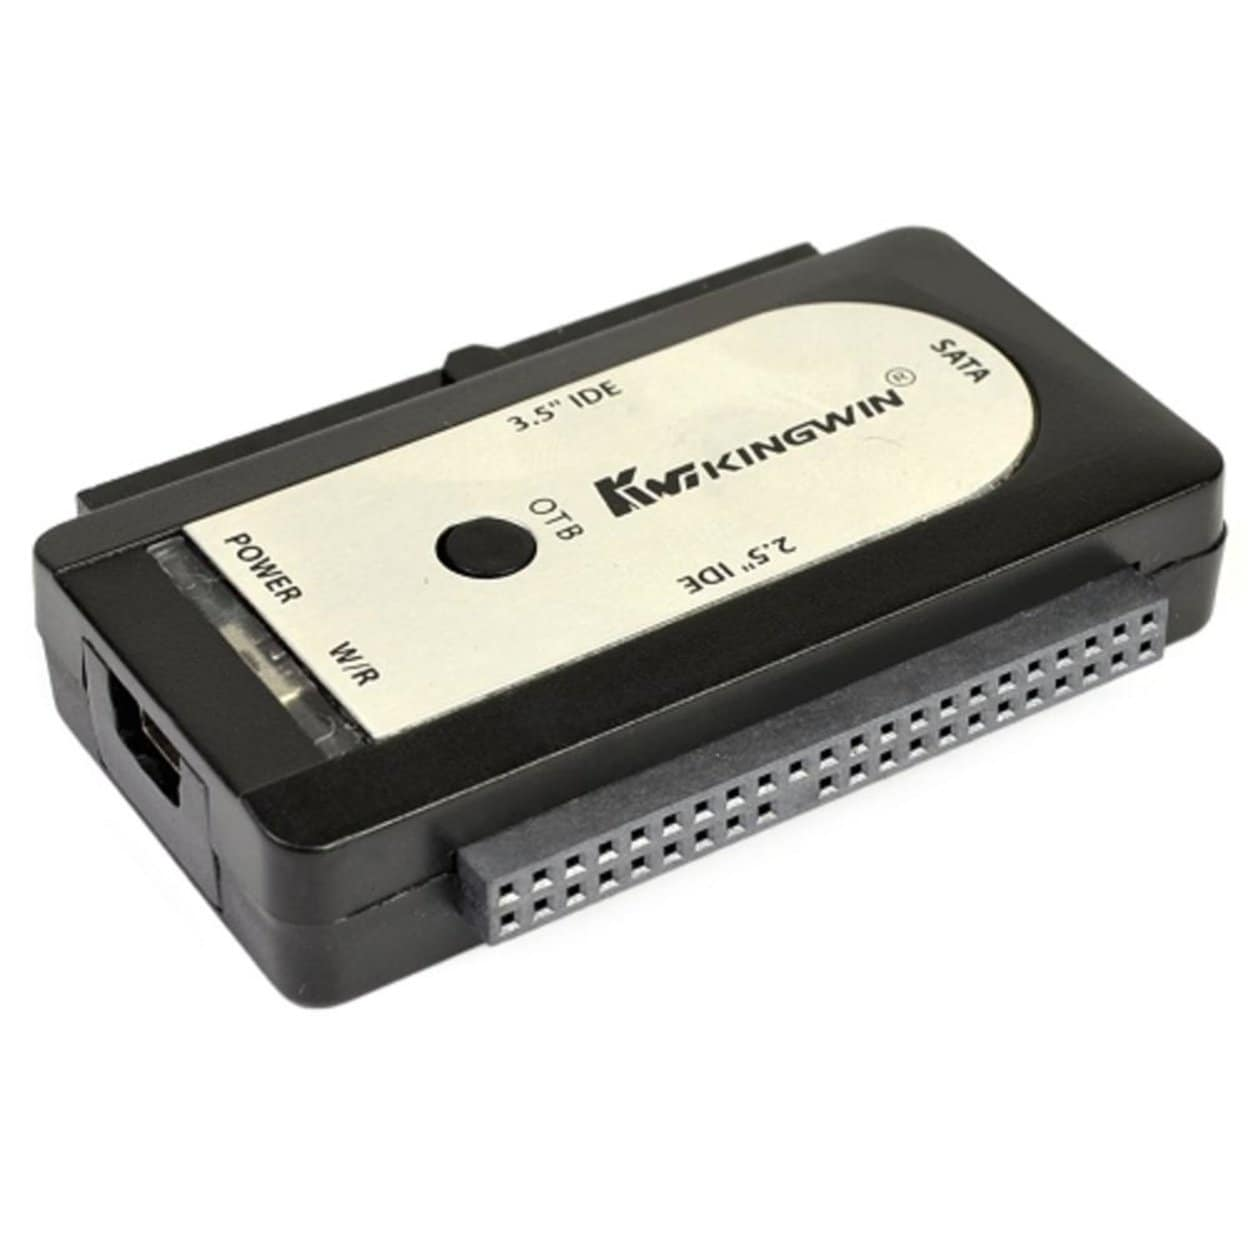 hight resolution of shop kingwin usi 2535 ez connect usb 2 0 to sata ide hard drive adapter turn your 2 5 3 5 sata or ide drive into usb on sale free shipping on orders